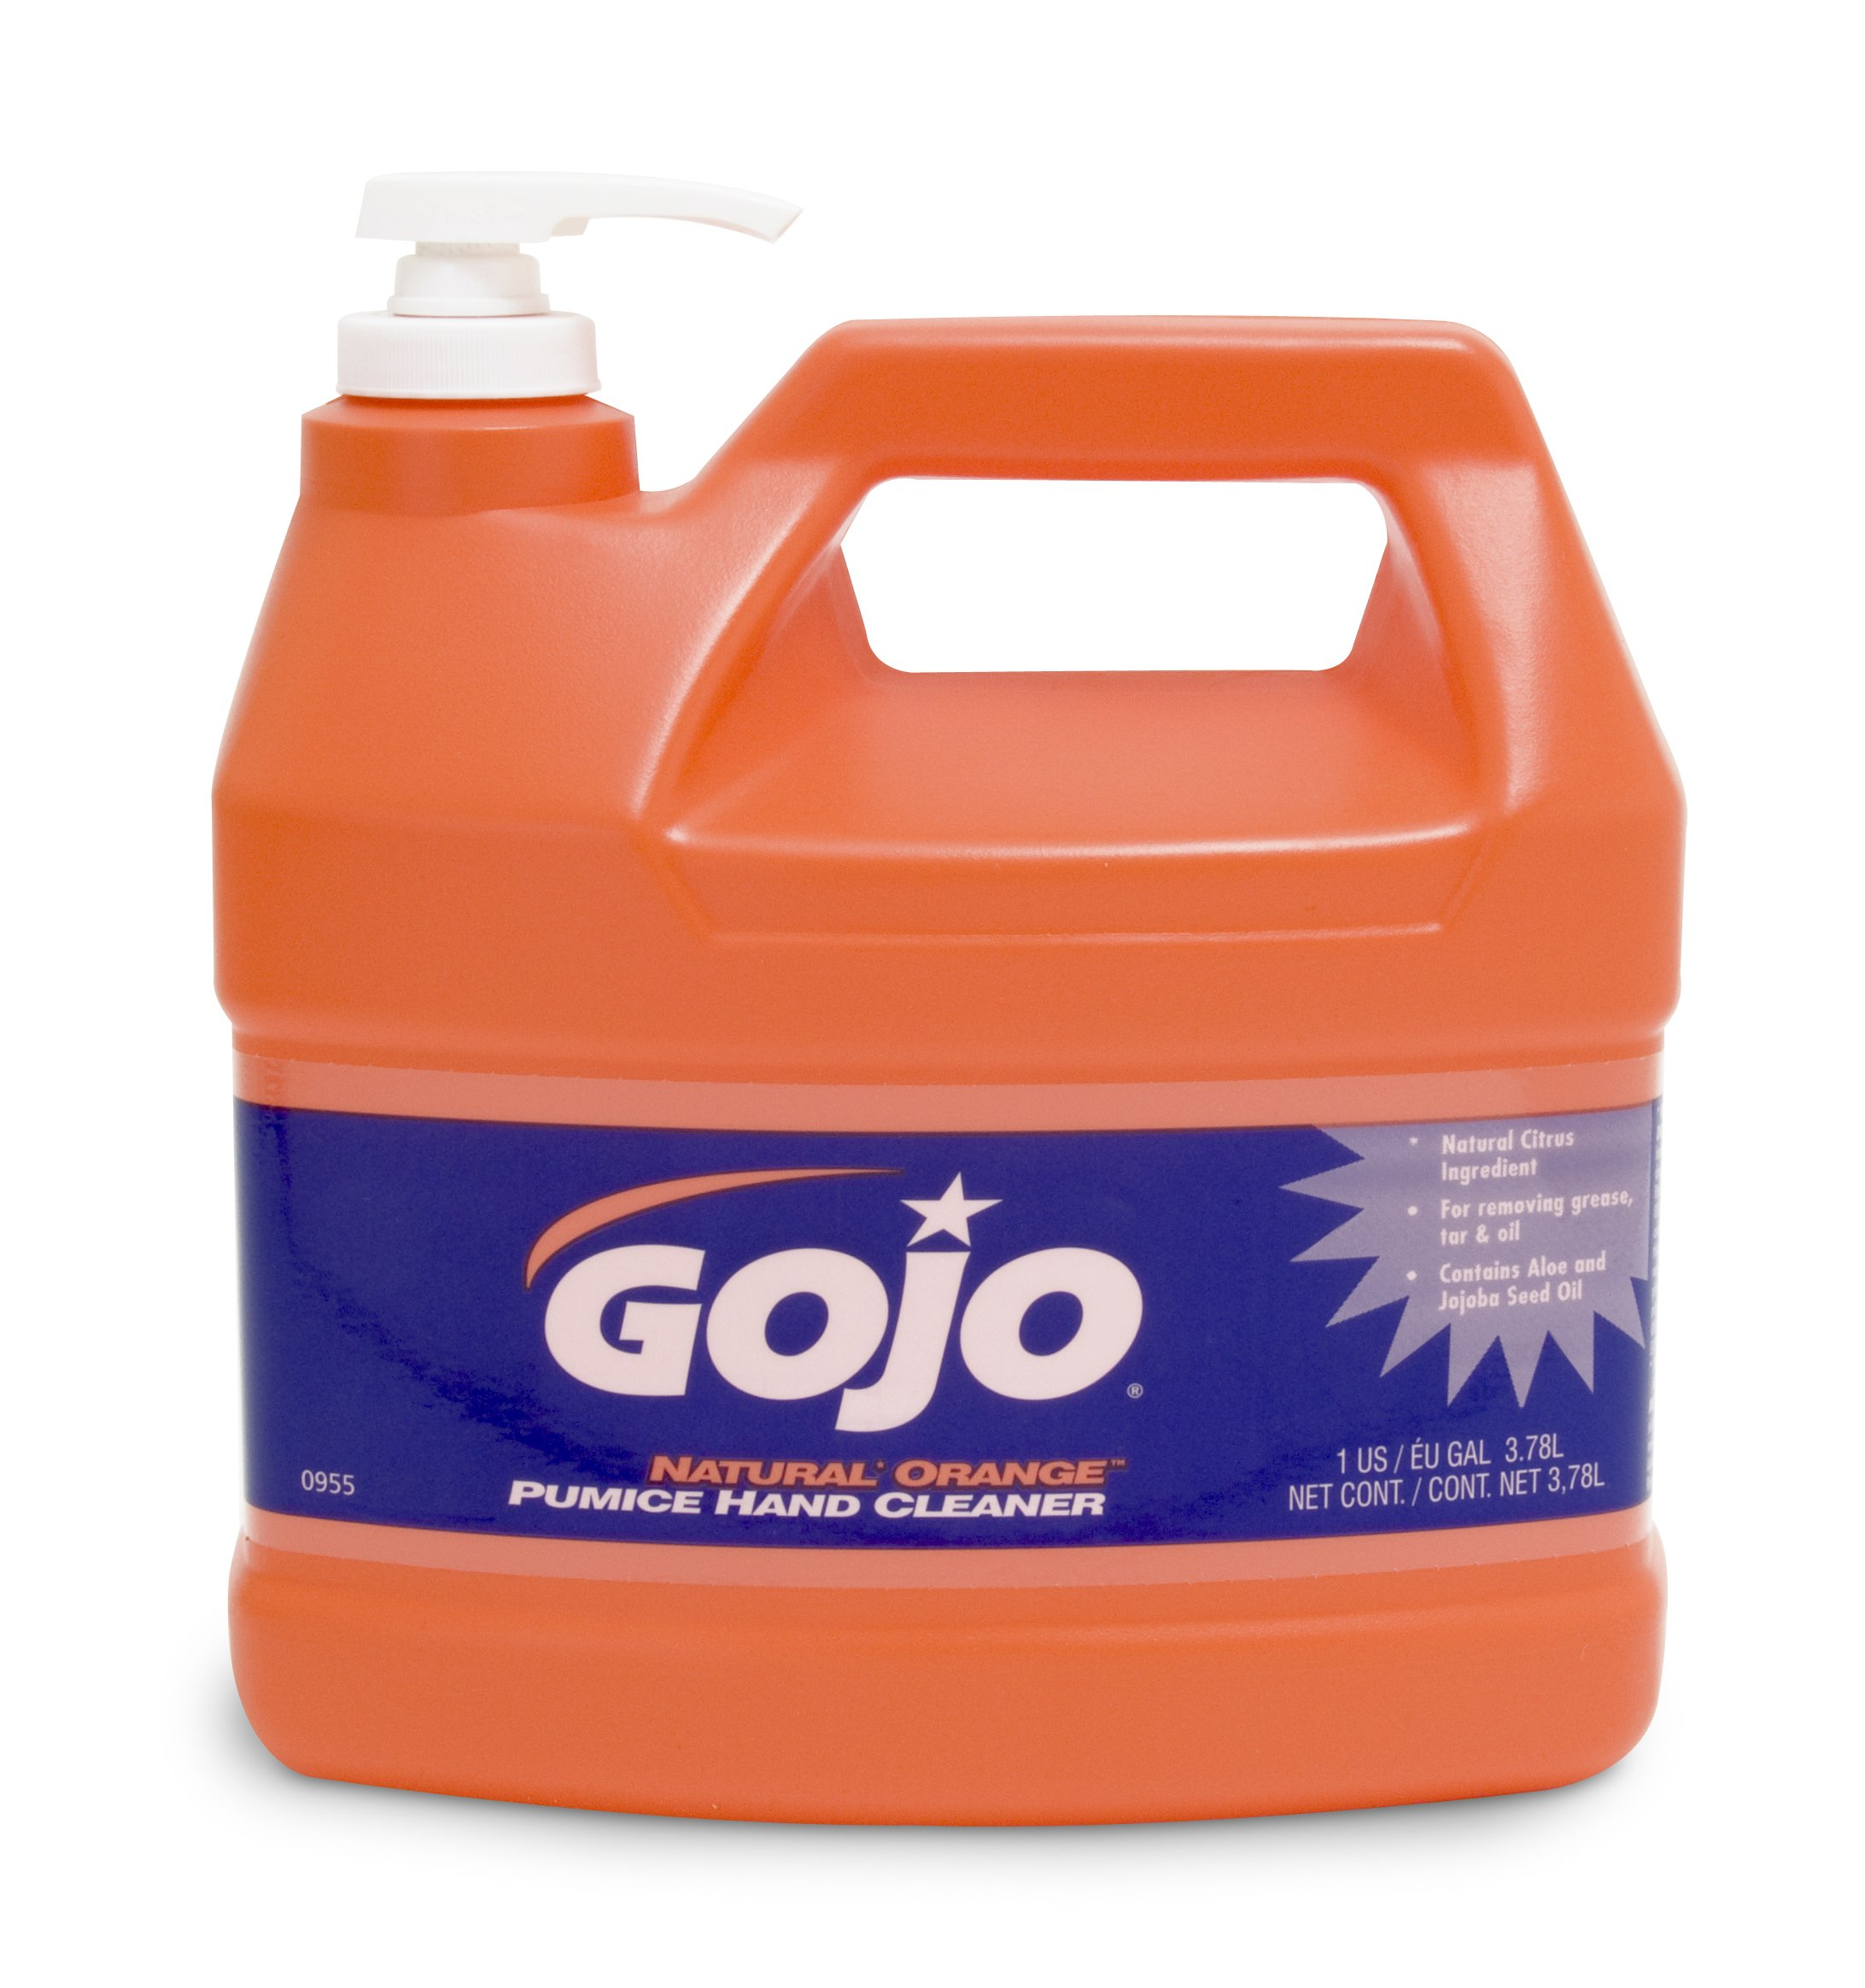 GOJO NATURAL ORANGE Pumice Industrial Hand Cleaner, 1 Gallon Quick Acting Lotion Hand Cleaner with Pumice Pump Bottle (Pack of 2) - 0955-02 by Gojo (Image #2)